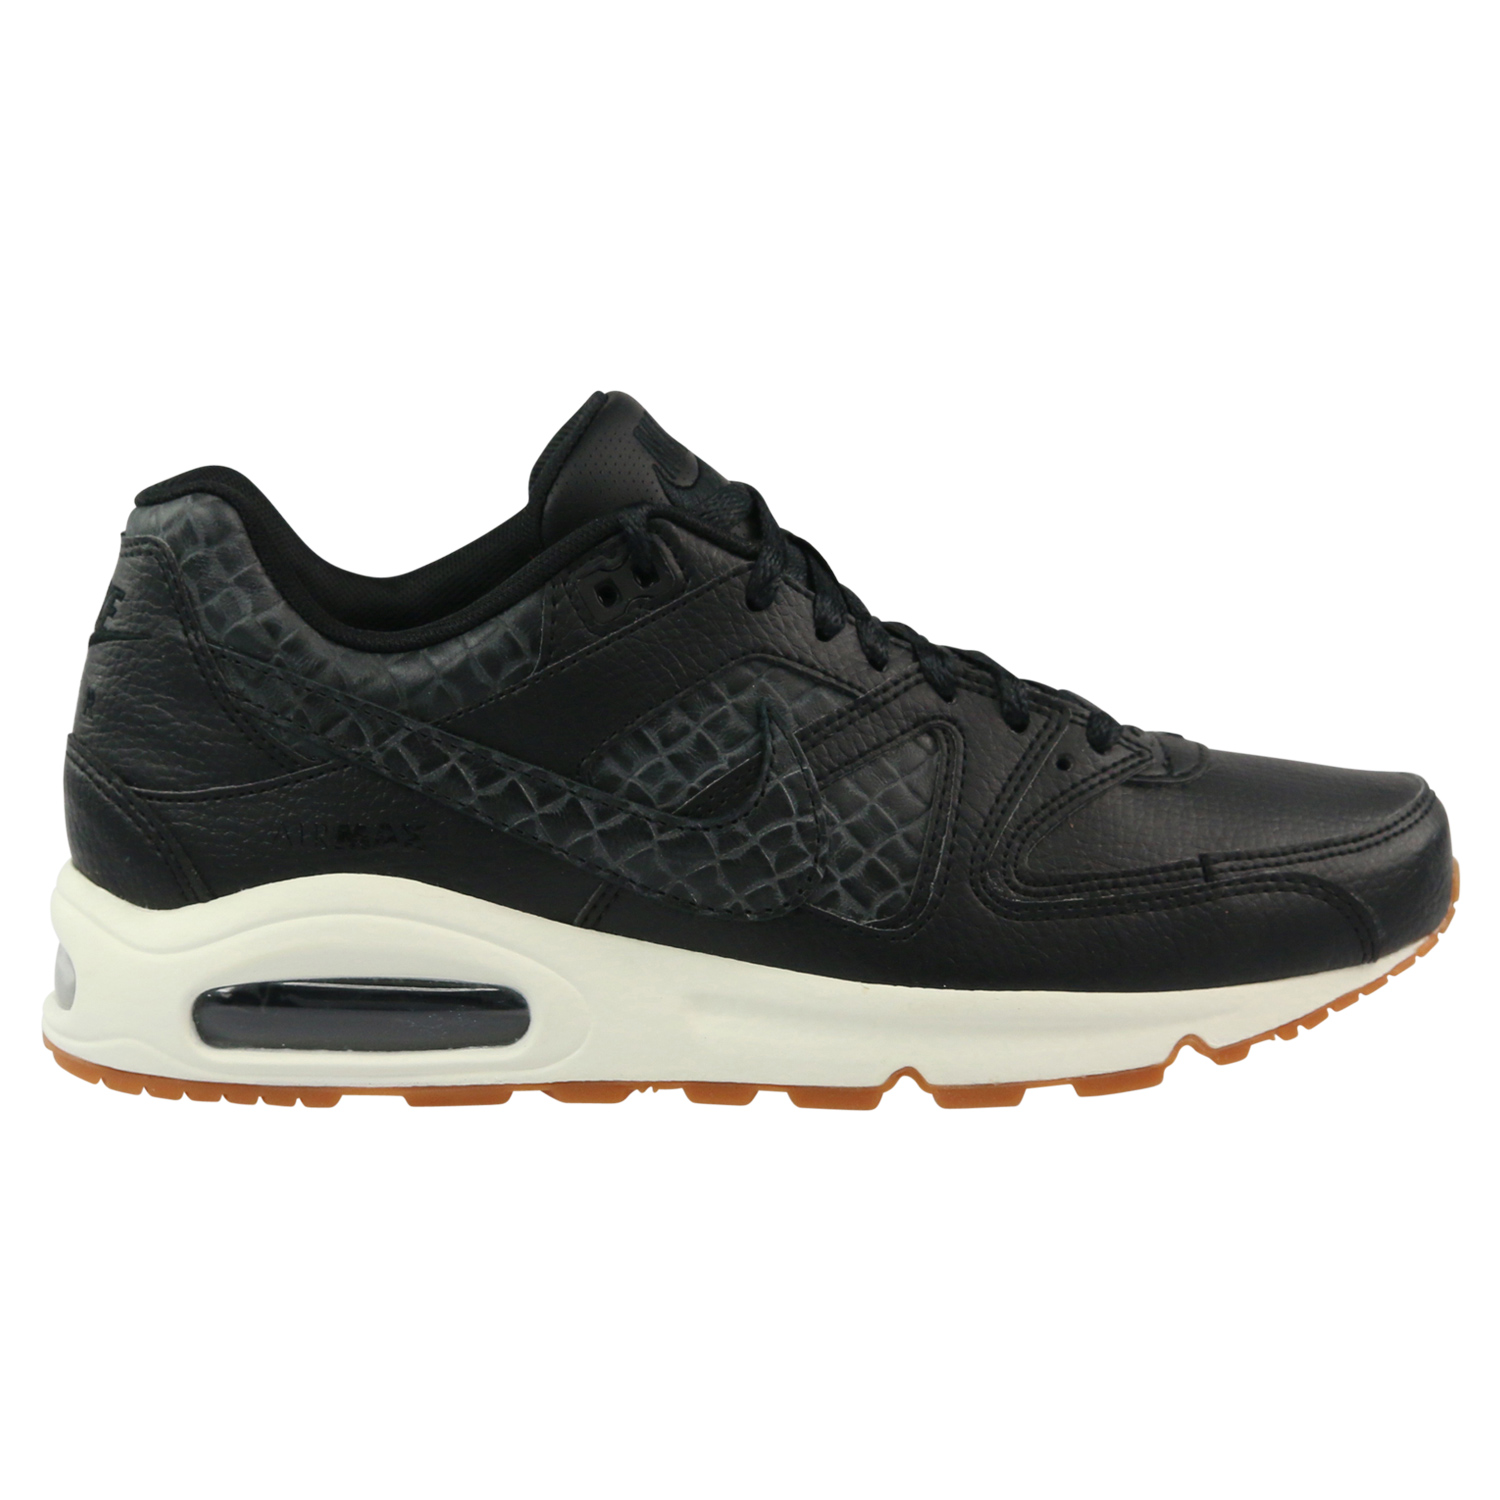 nike air max command schuhe sneaker turnschuhe damen ebay. Black Bedroom Furniture Sets. Home Design Ideas